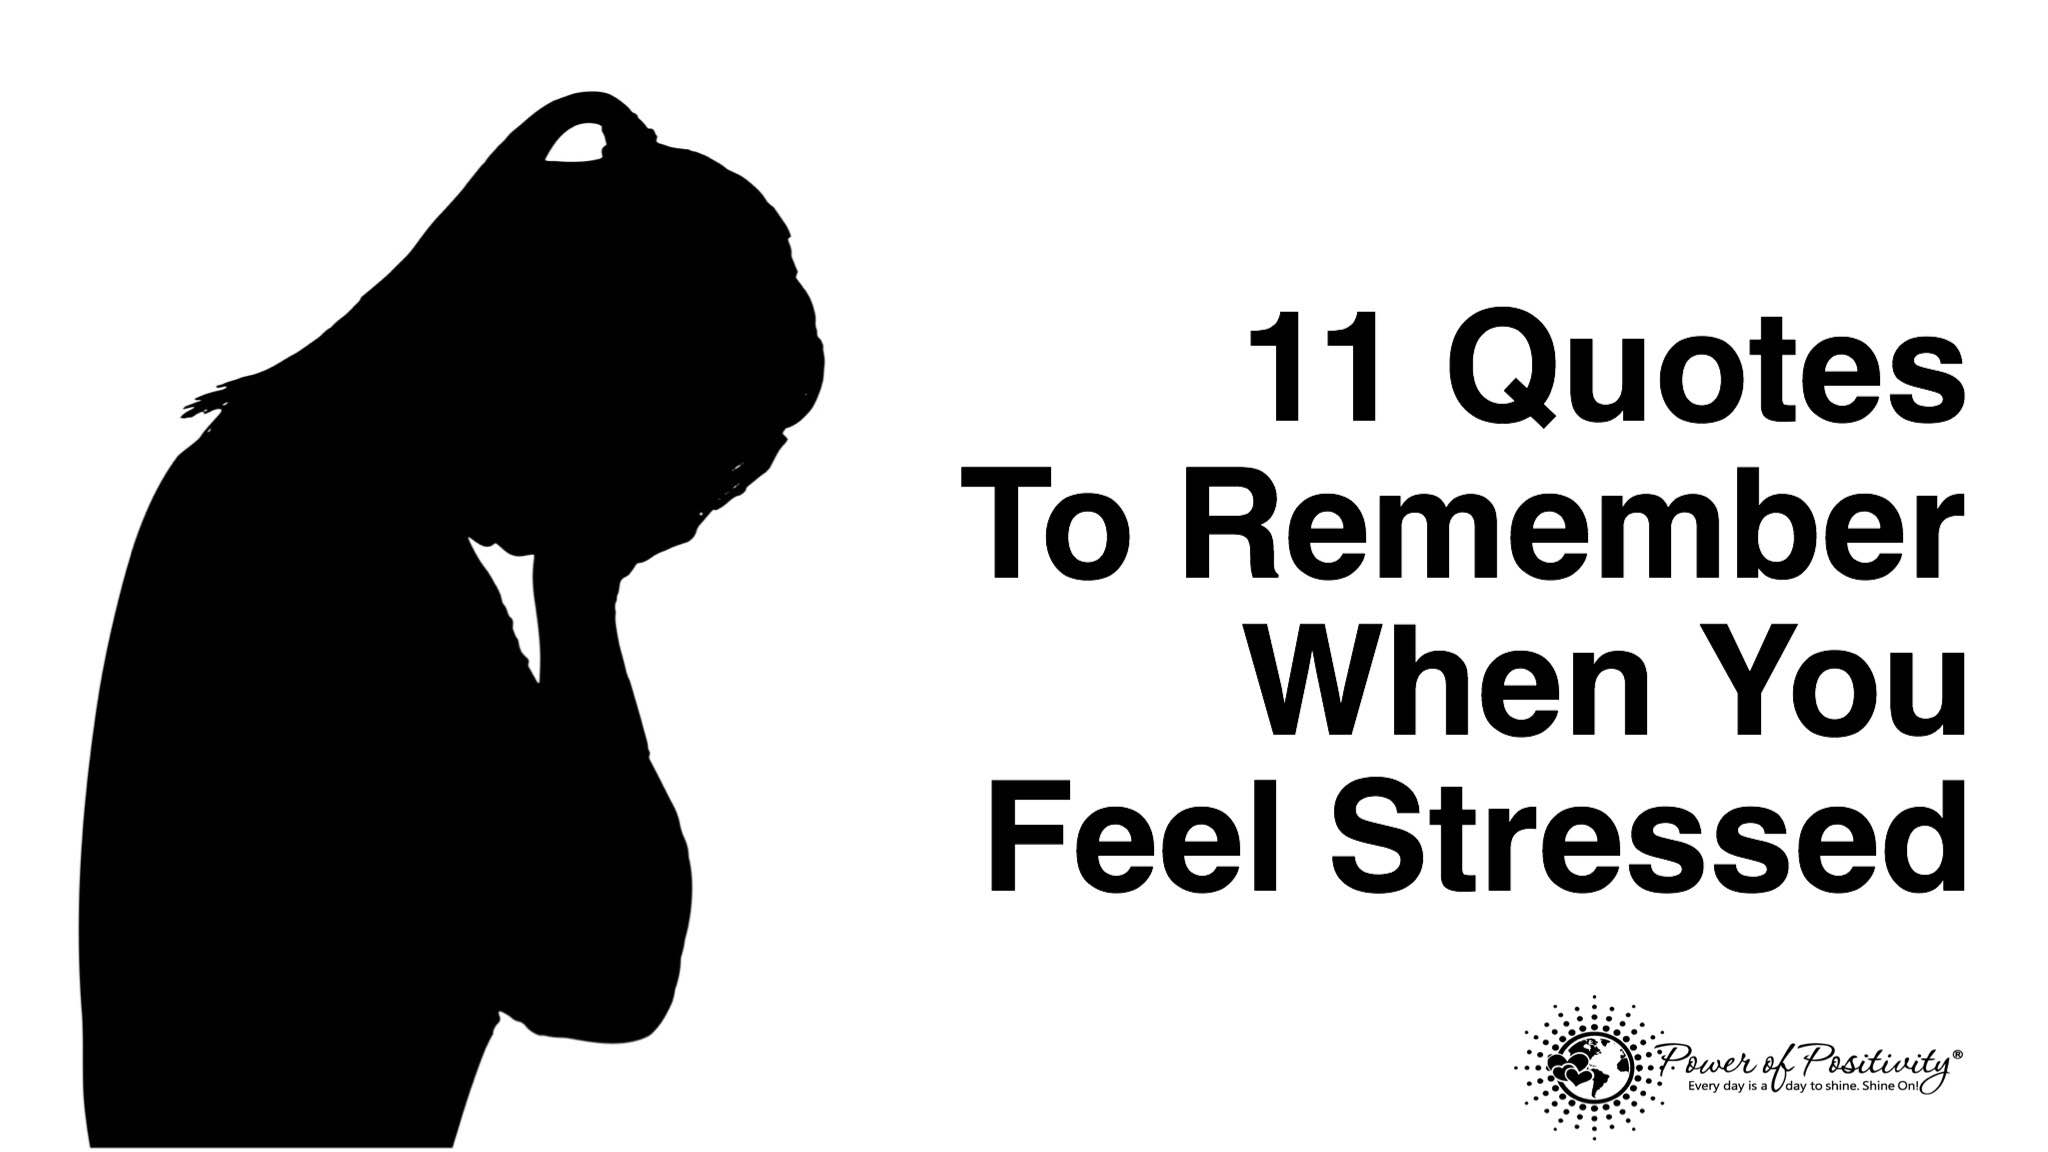 11 Quotes To Remember When You Feel Stressed